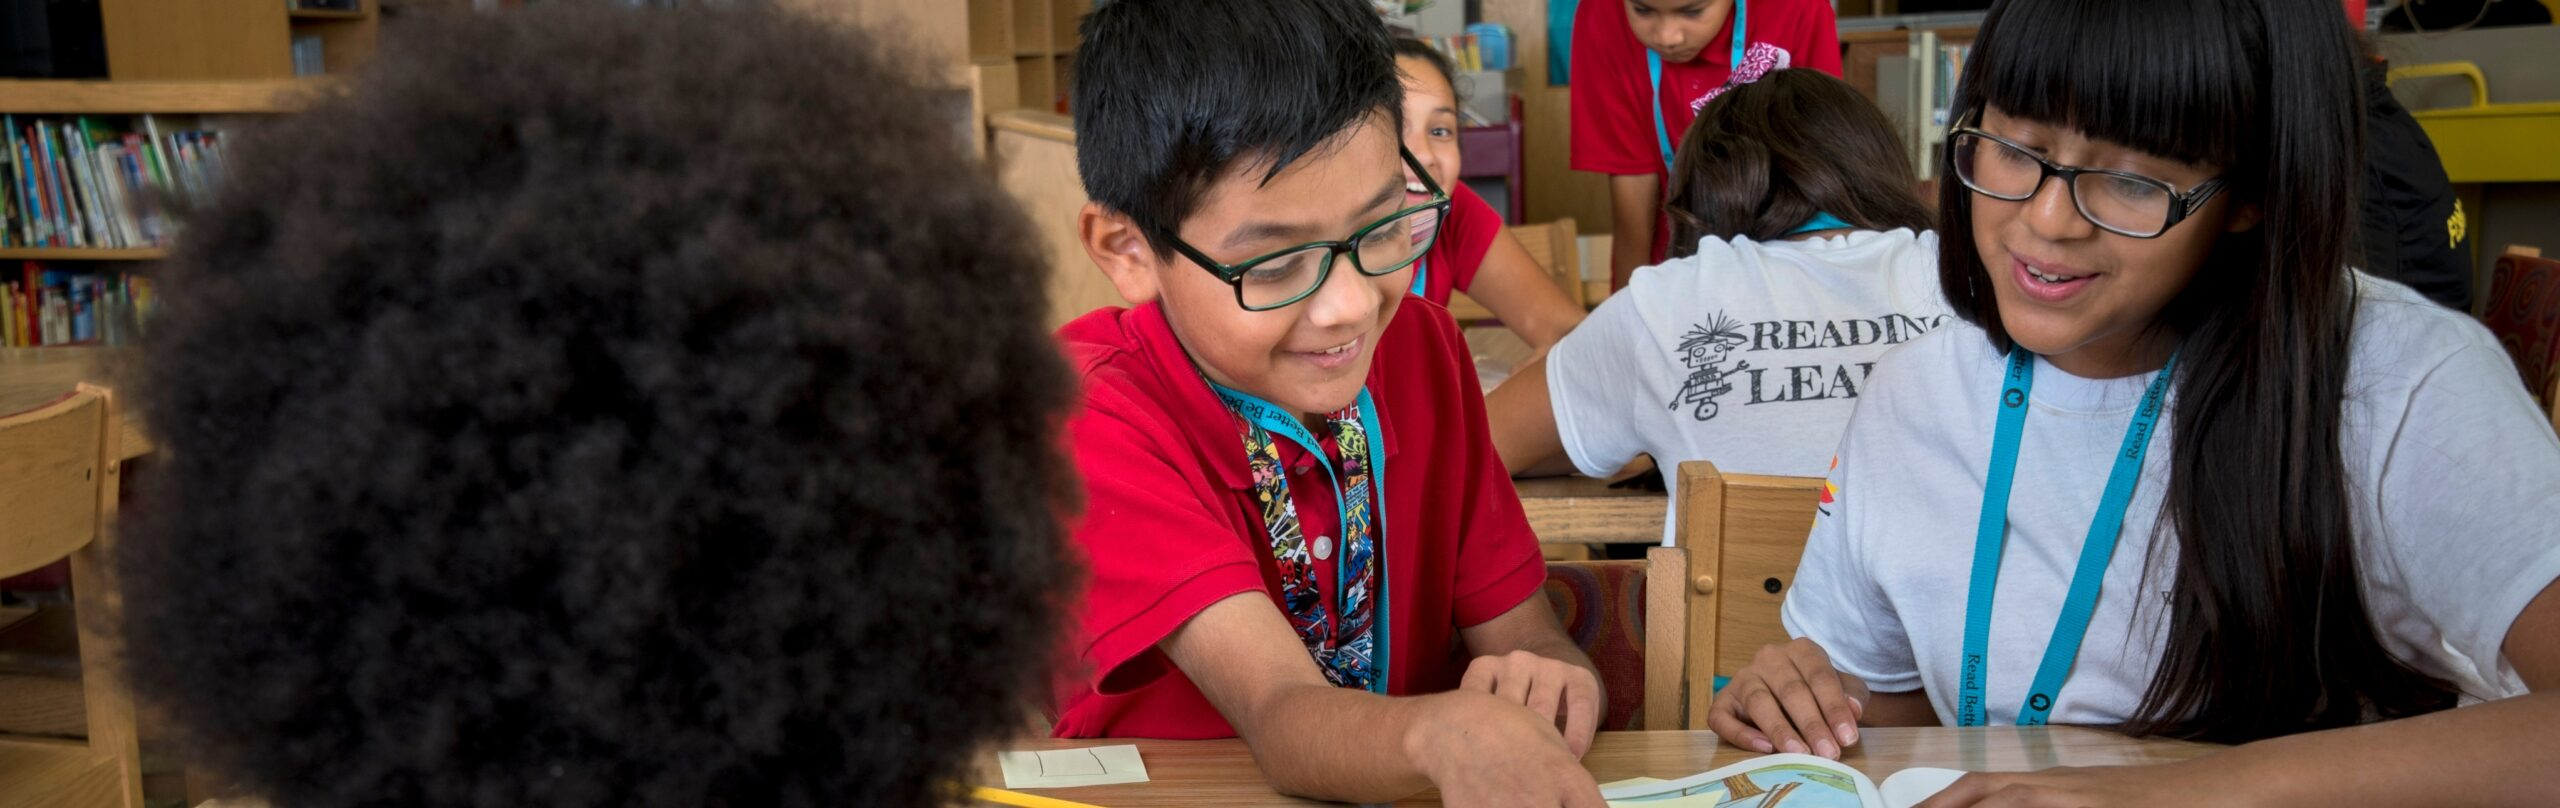 two students smiling and reading